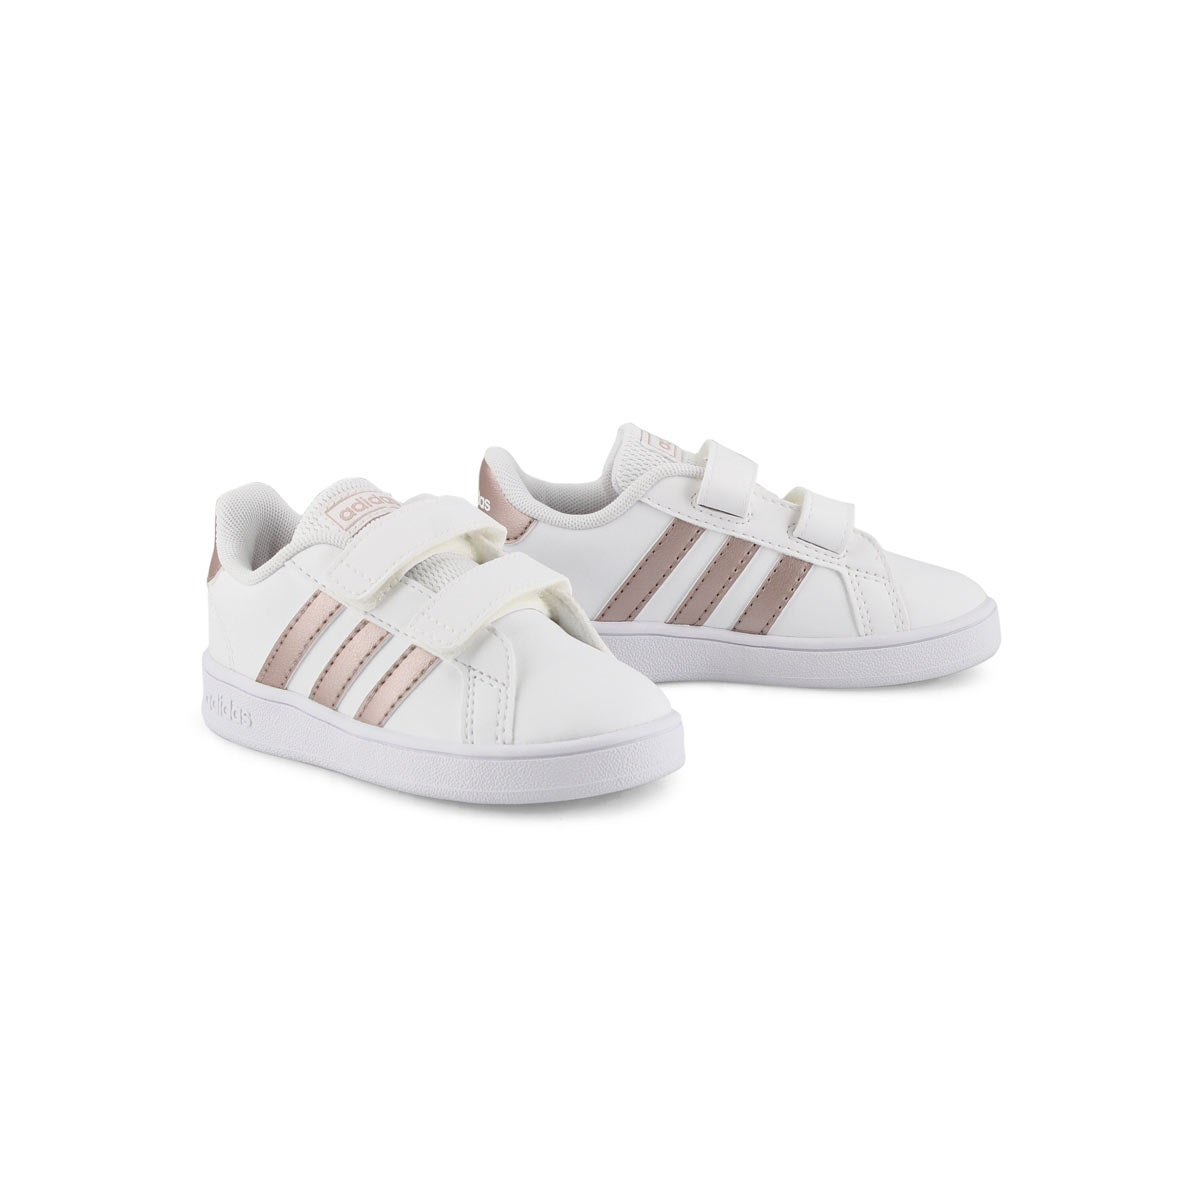 Toddlers' GRAND COURT white/copper sneakers